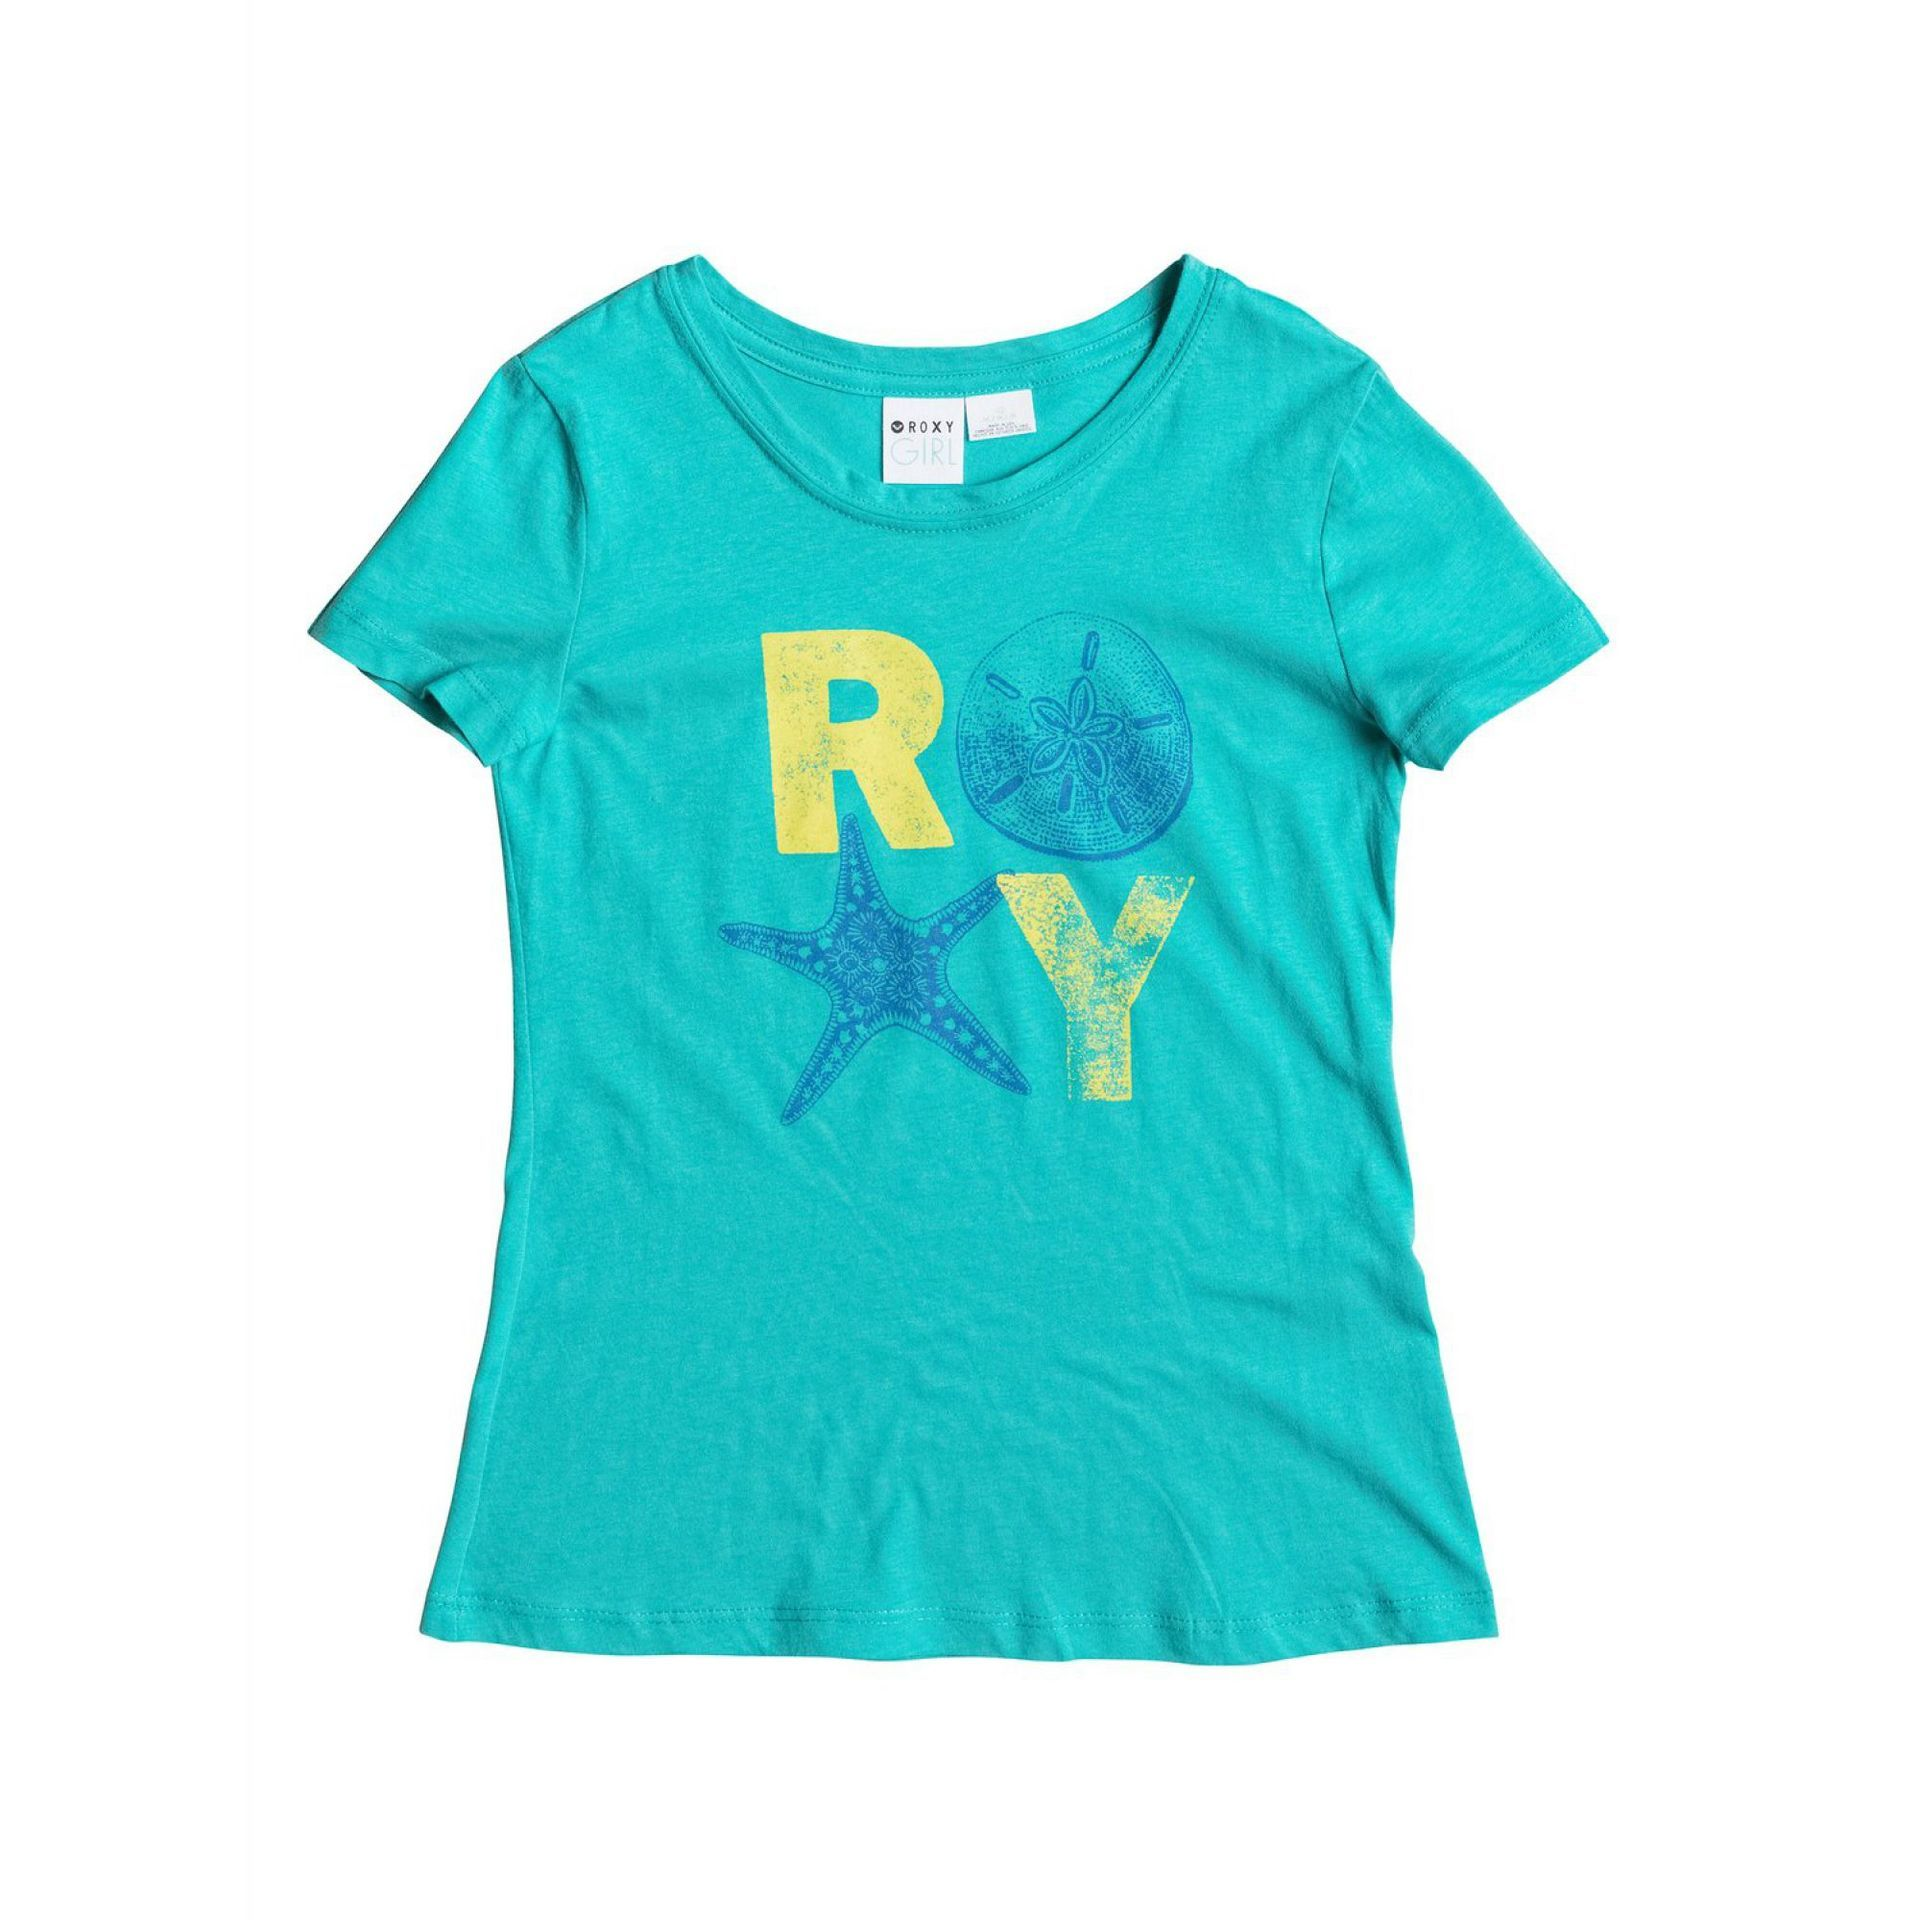 T-SHIRT ROXY BASIC TEE RG B BALTIC BLUE